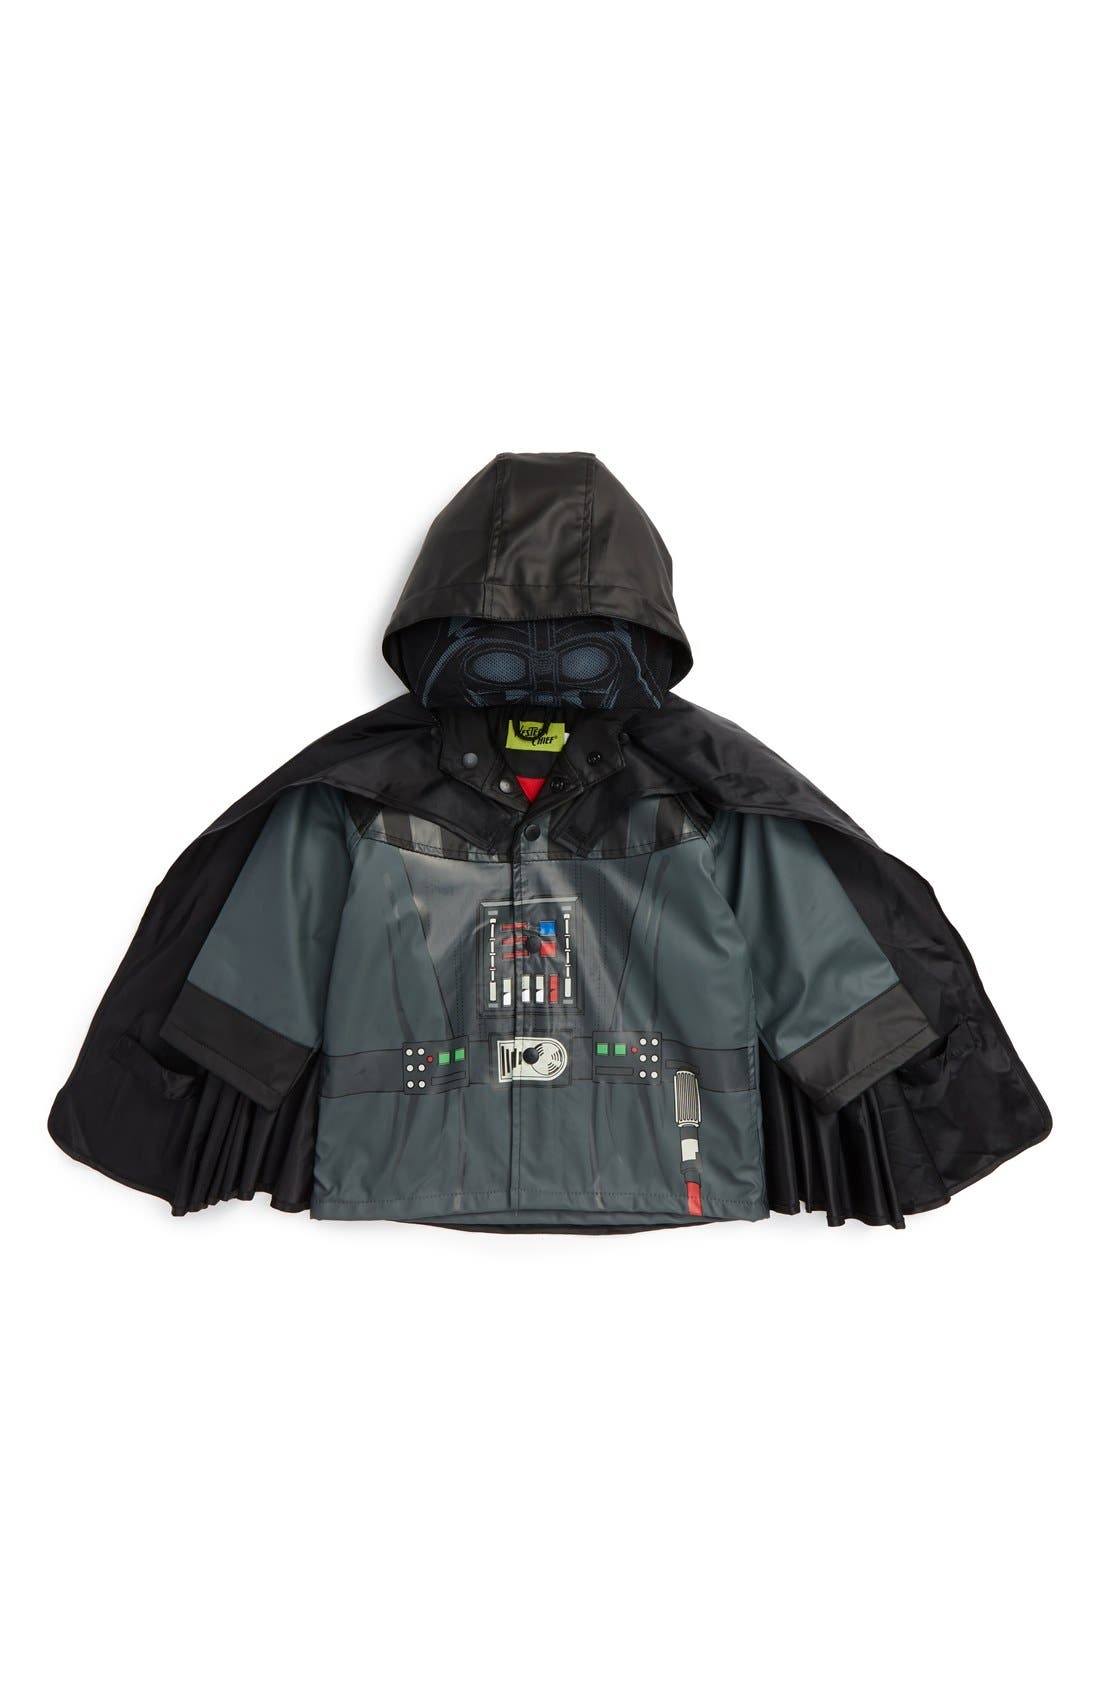 Western Chief Star Wars™ - Darth Vader Raincoat (Toddler Boys & Little Boys)